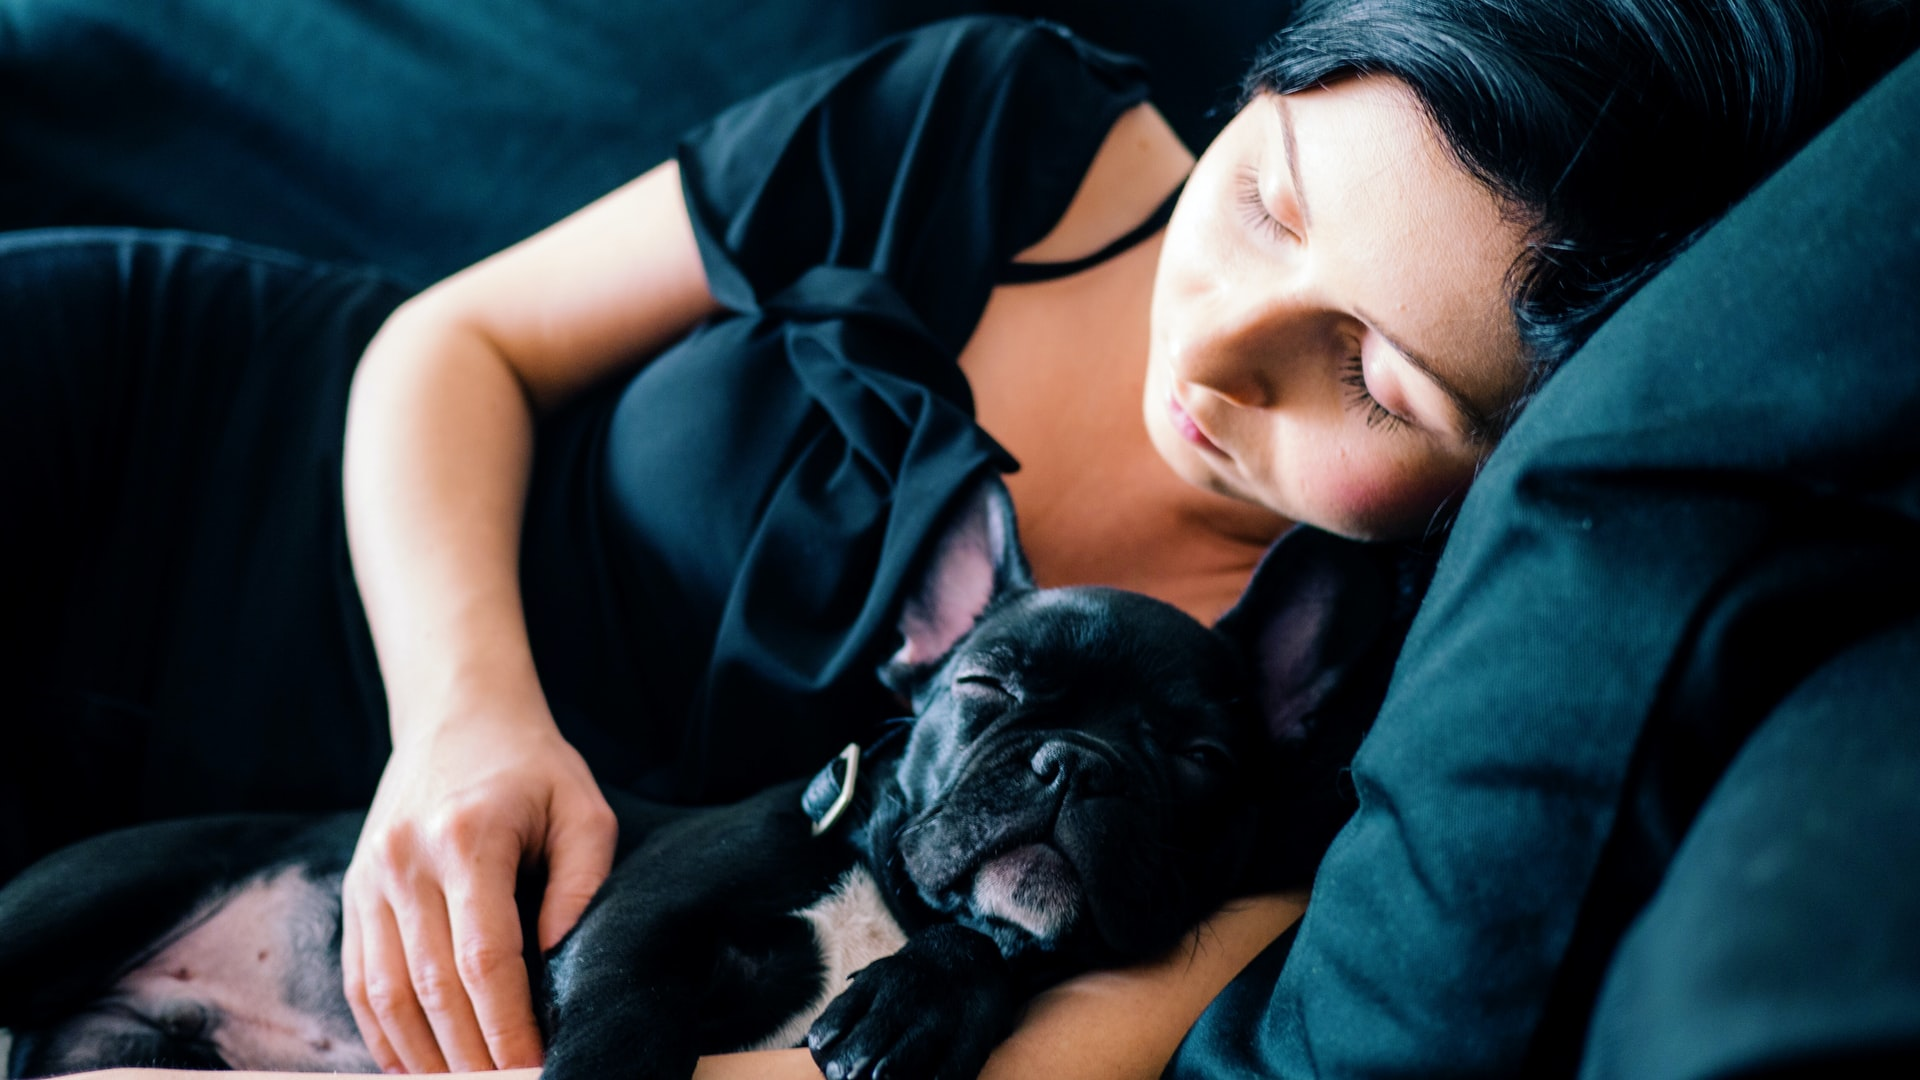 girl-and-puppy-in-deep-sleep.jpg